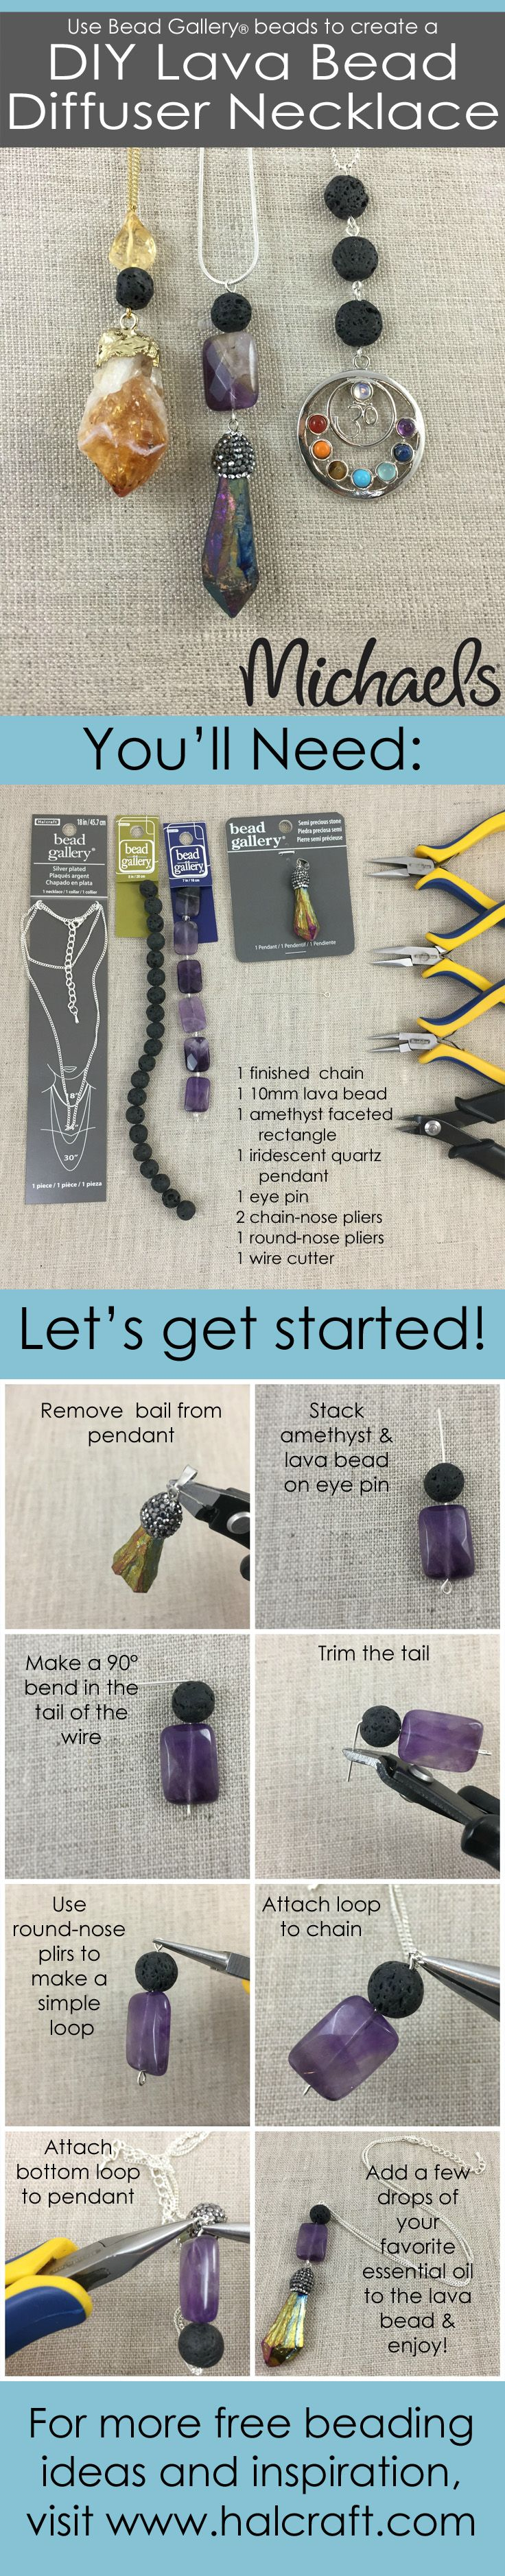 Monday Make How To Make Lava Bead Diffuser Jewelry With Images